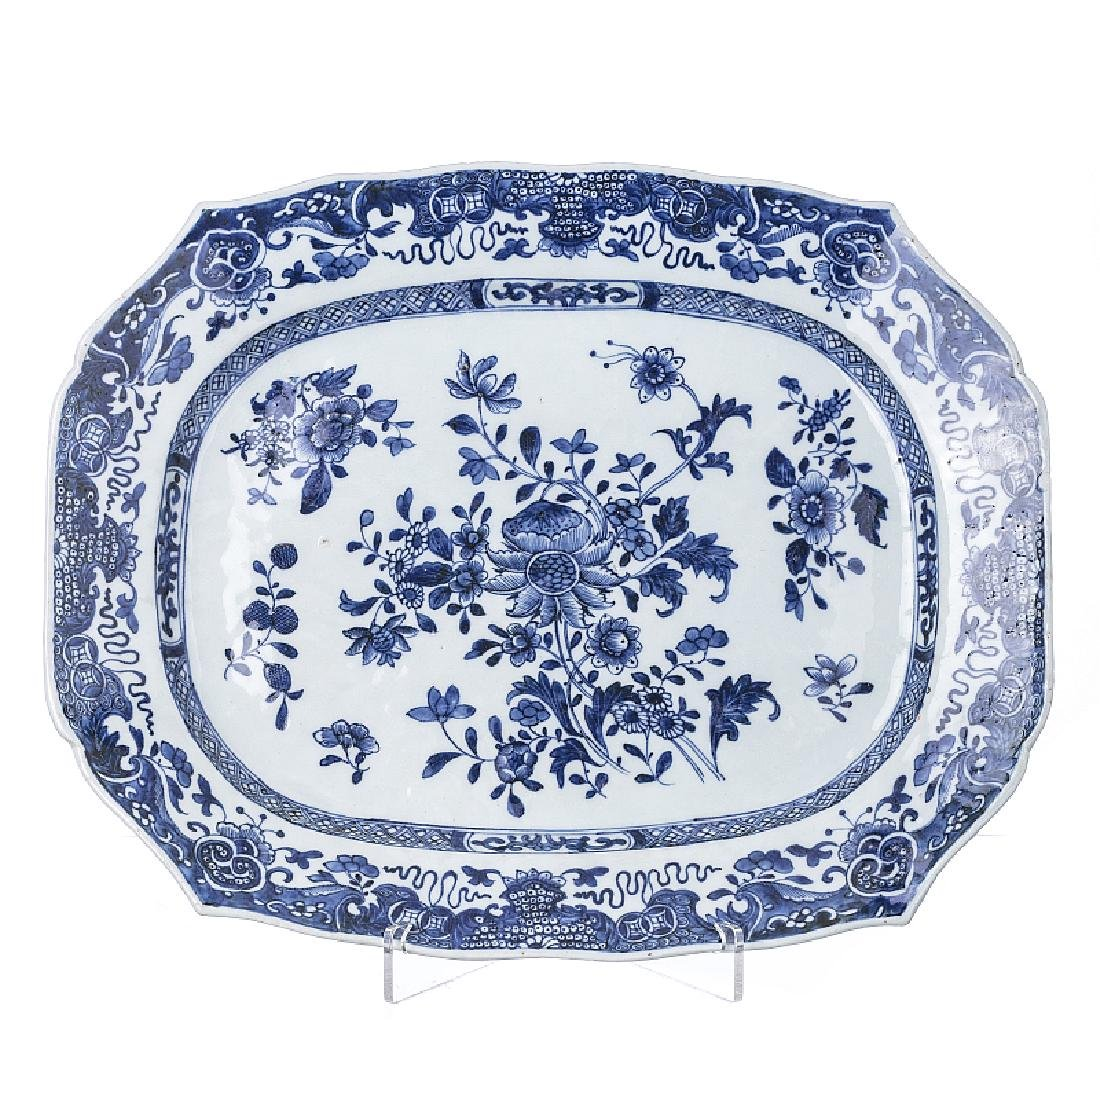 Scalloped platter in Chinese porcelain, Qianlong